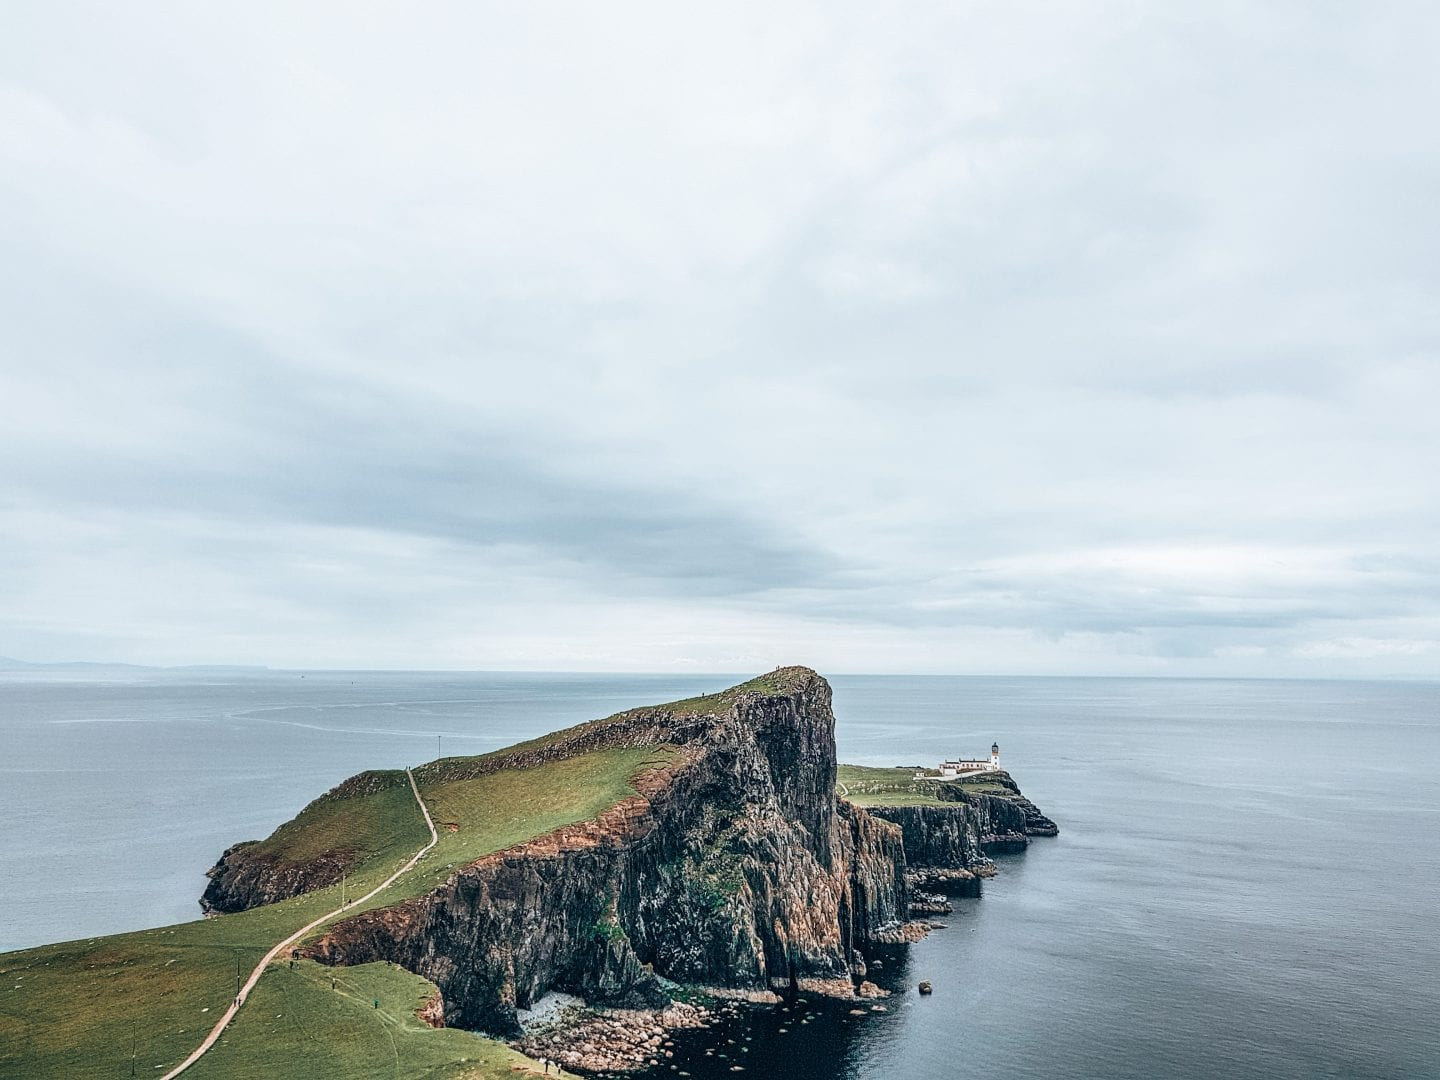 lighthouse on a cliff in front of the sea in scotland